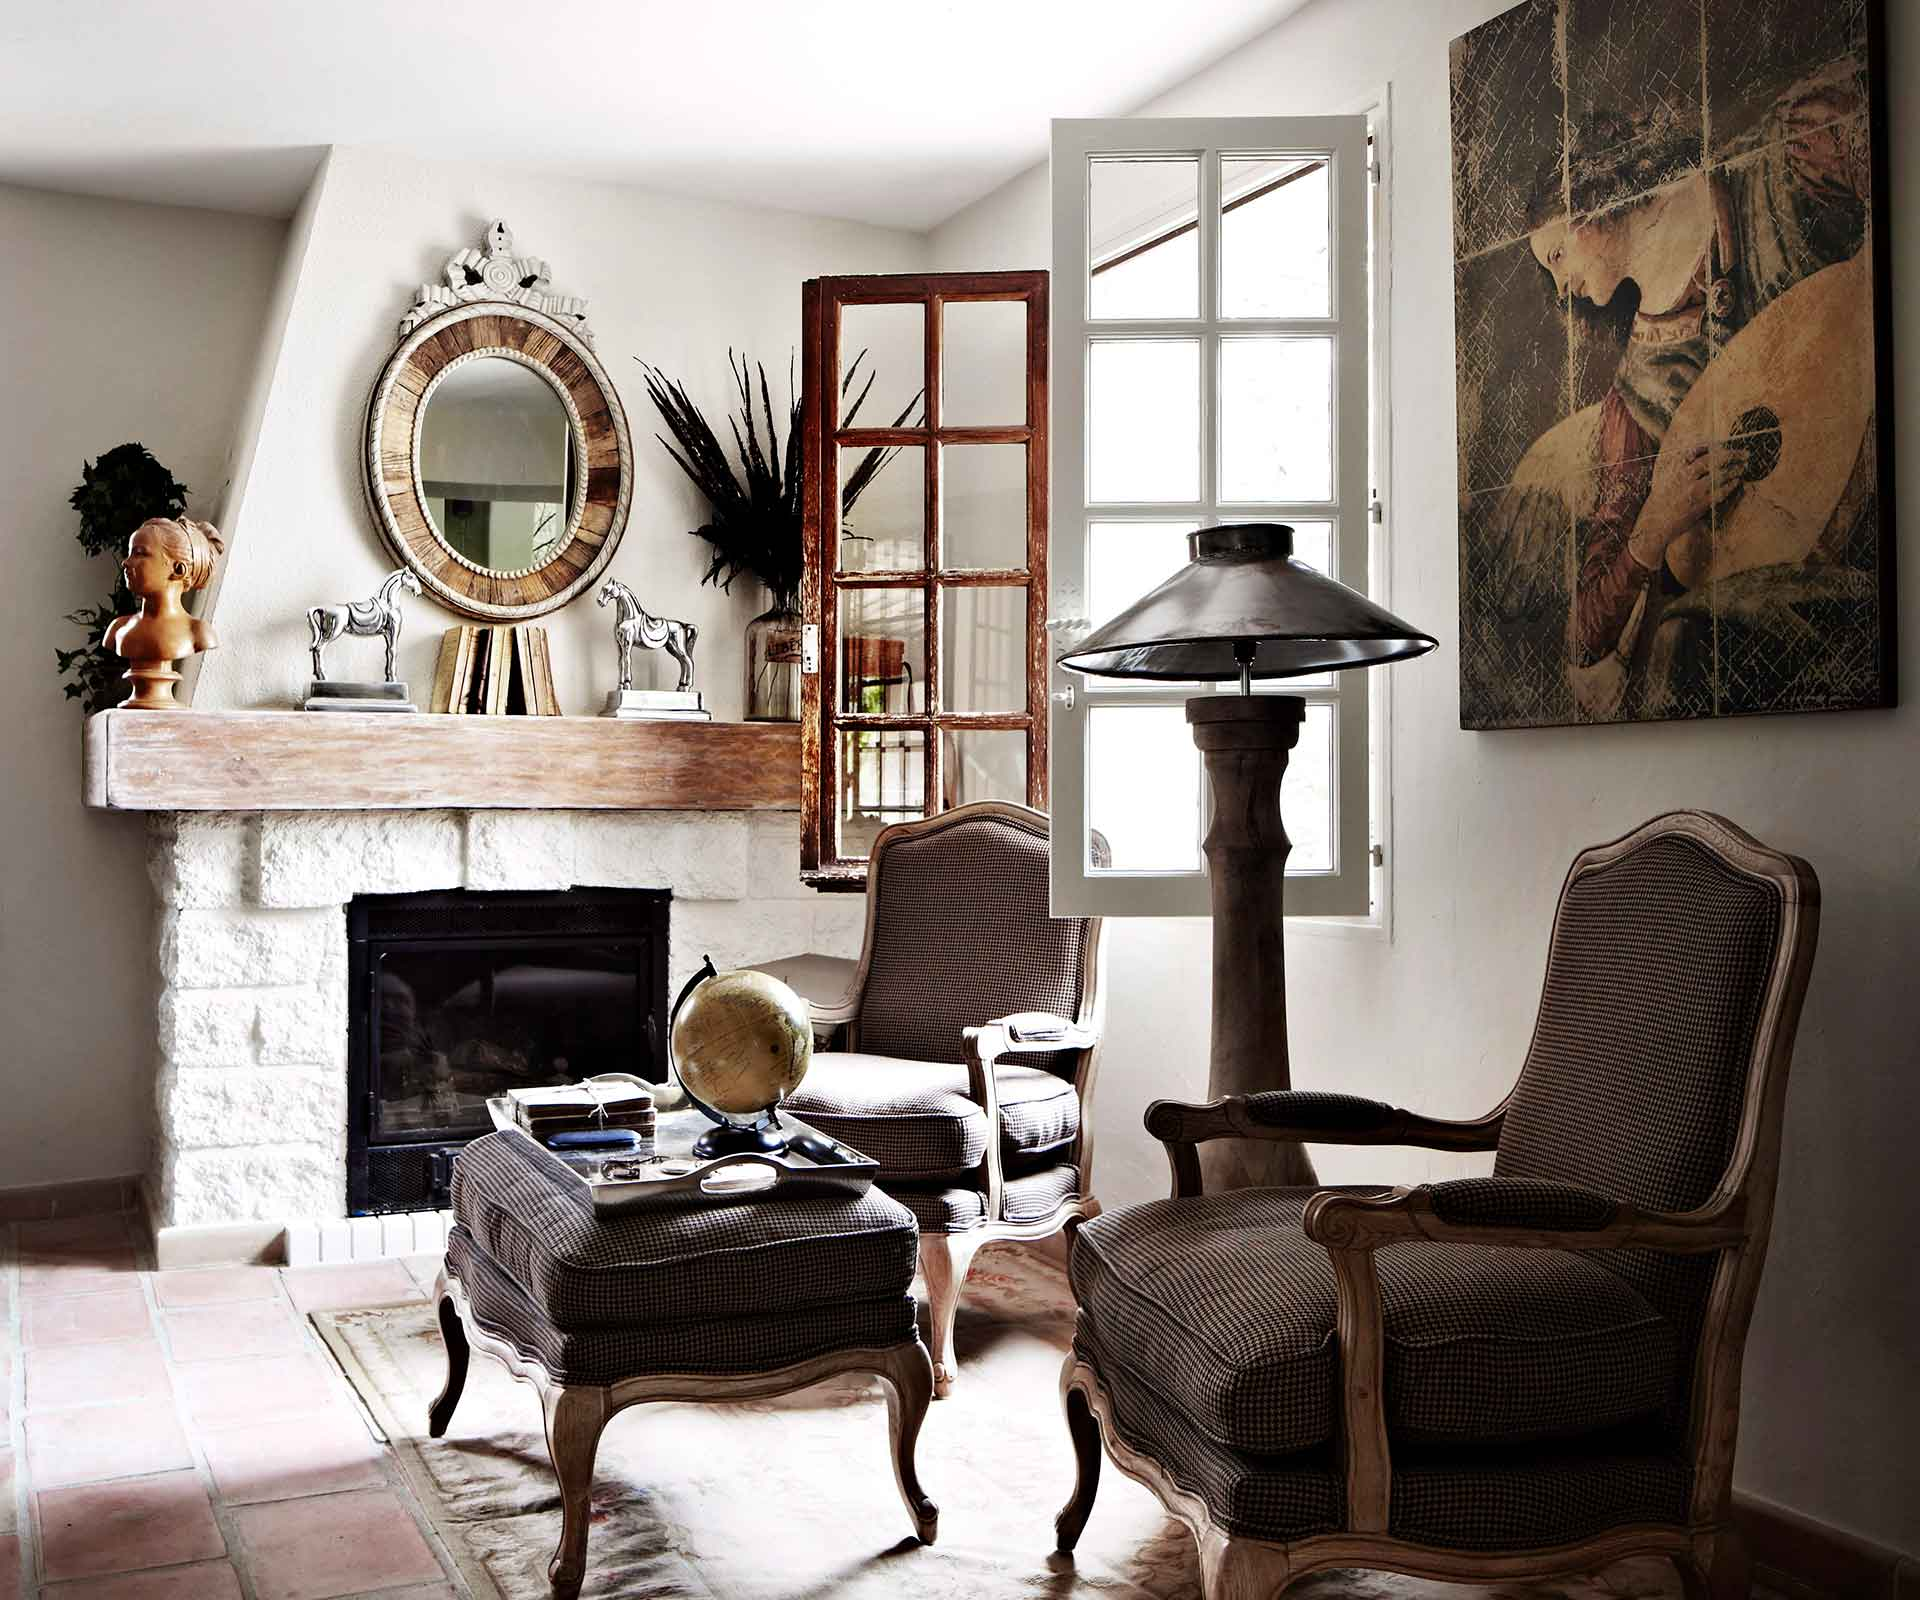 10 expert tips for buying antiques